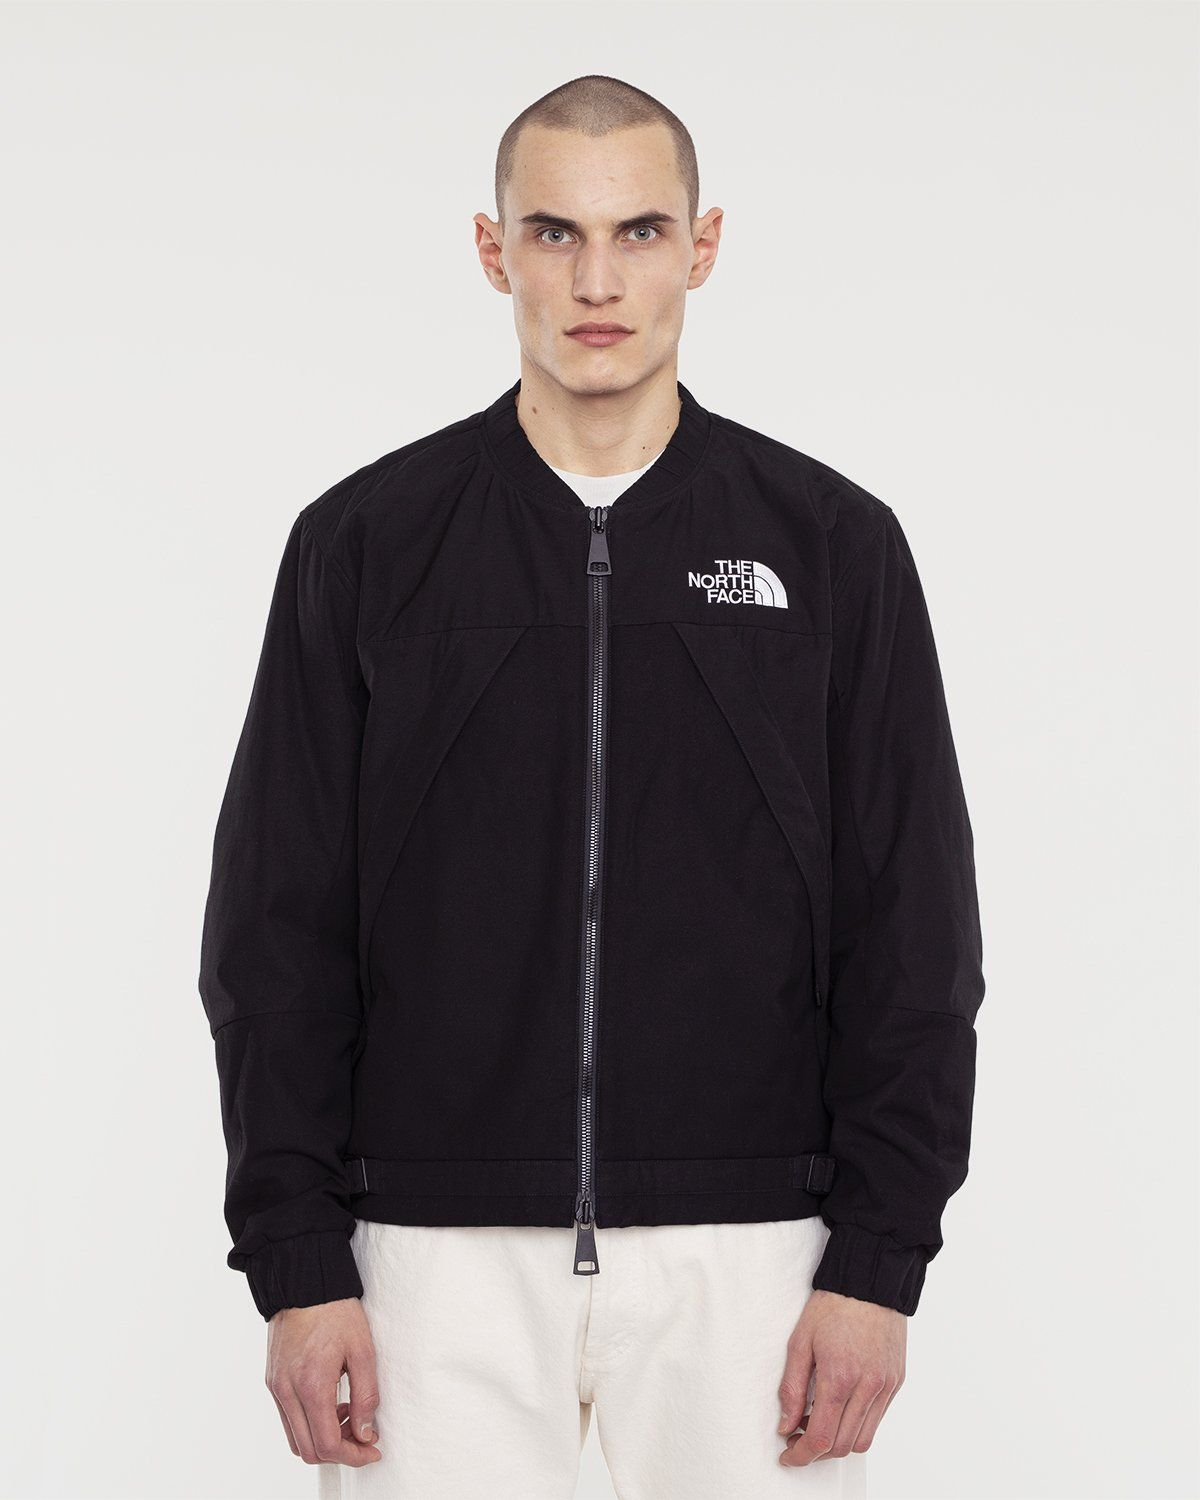 The North Face Black Series - Spectra® Blouson Jacket Black  - Image 3